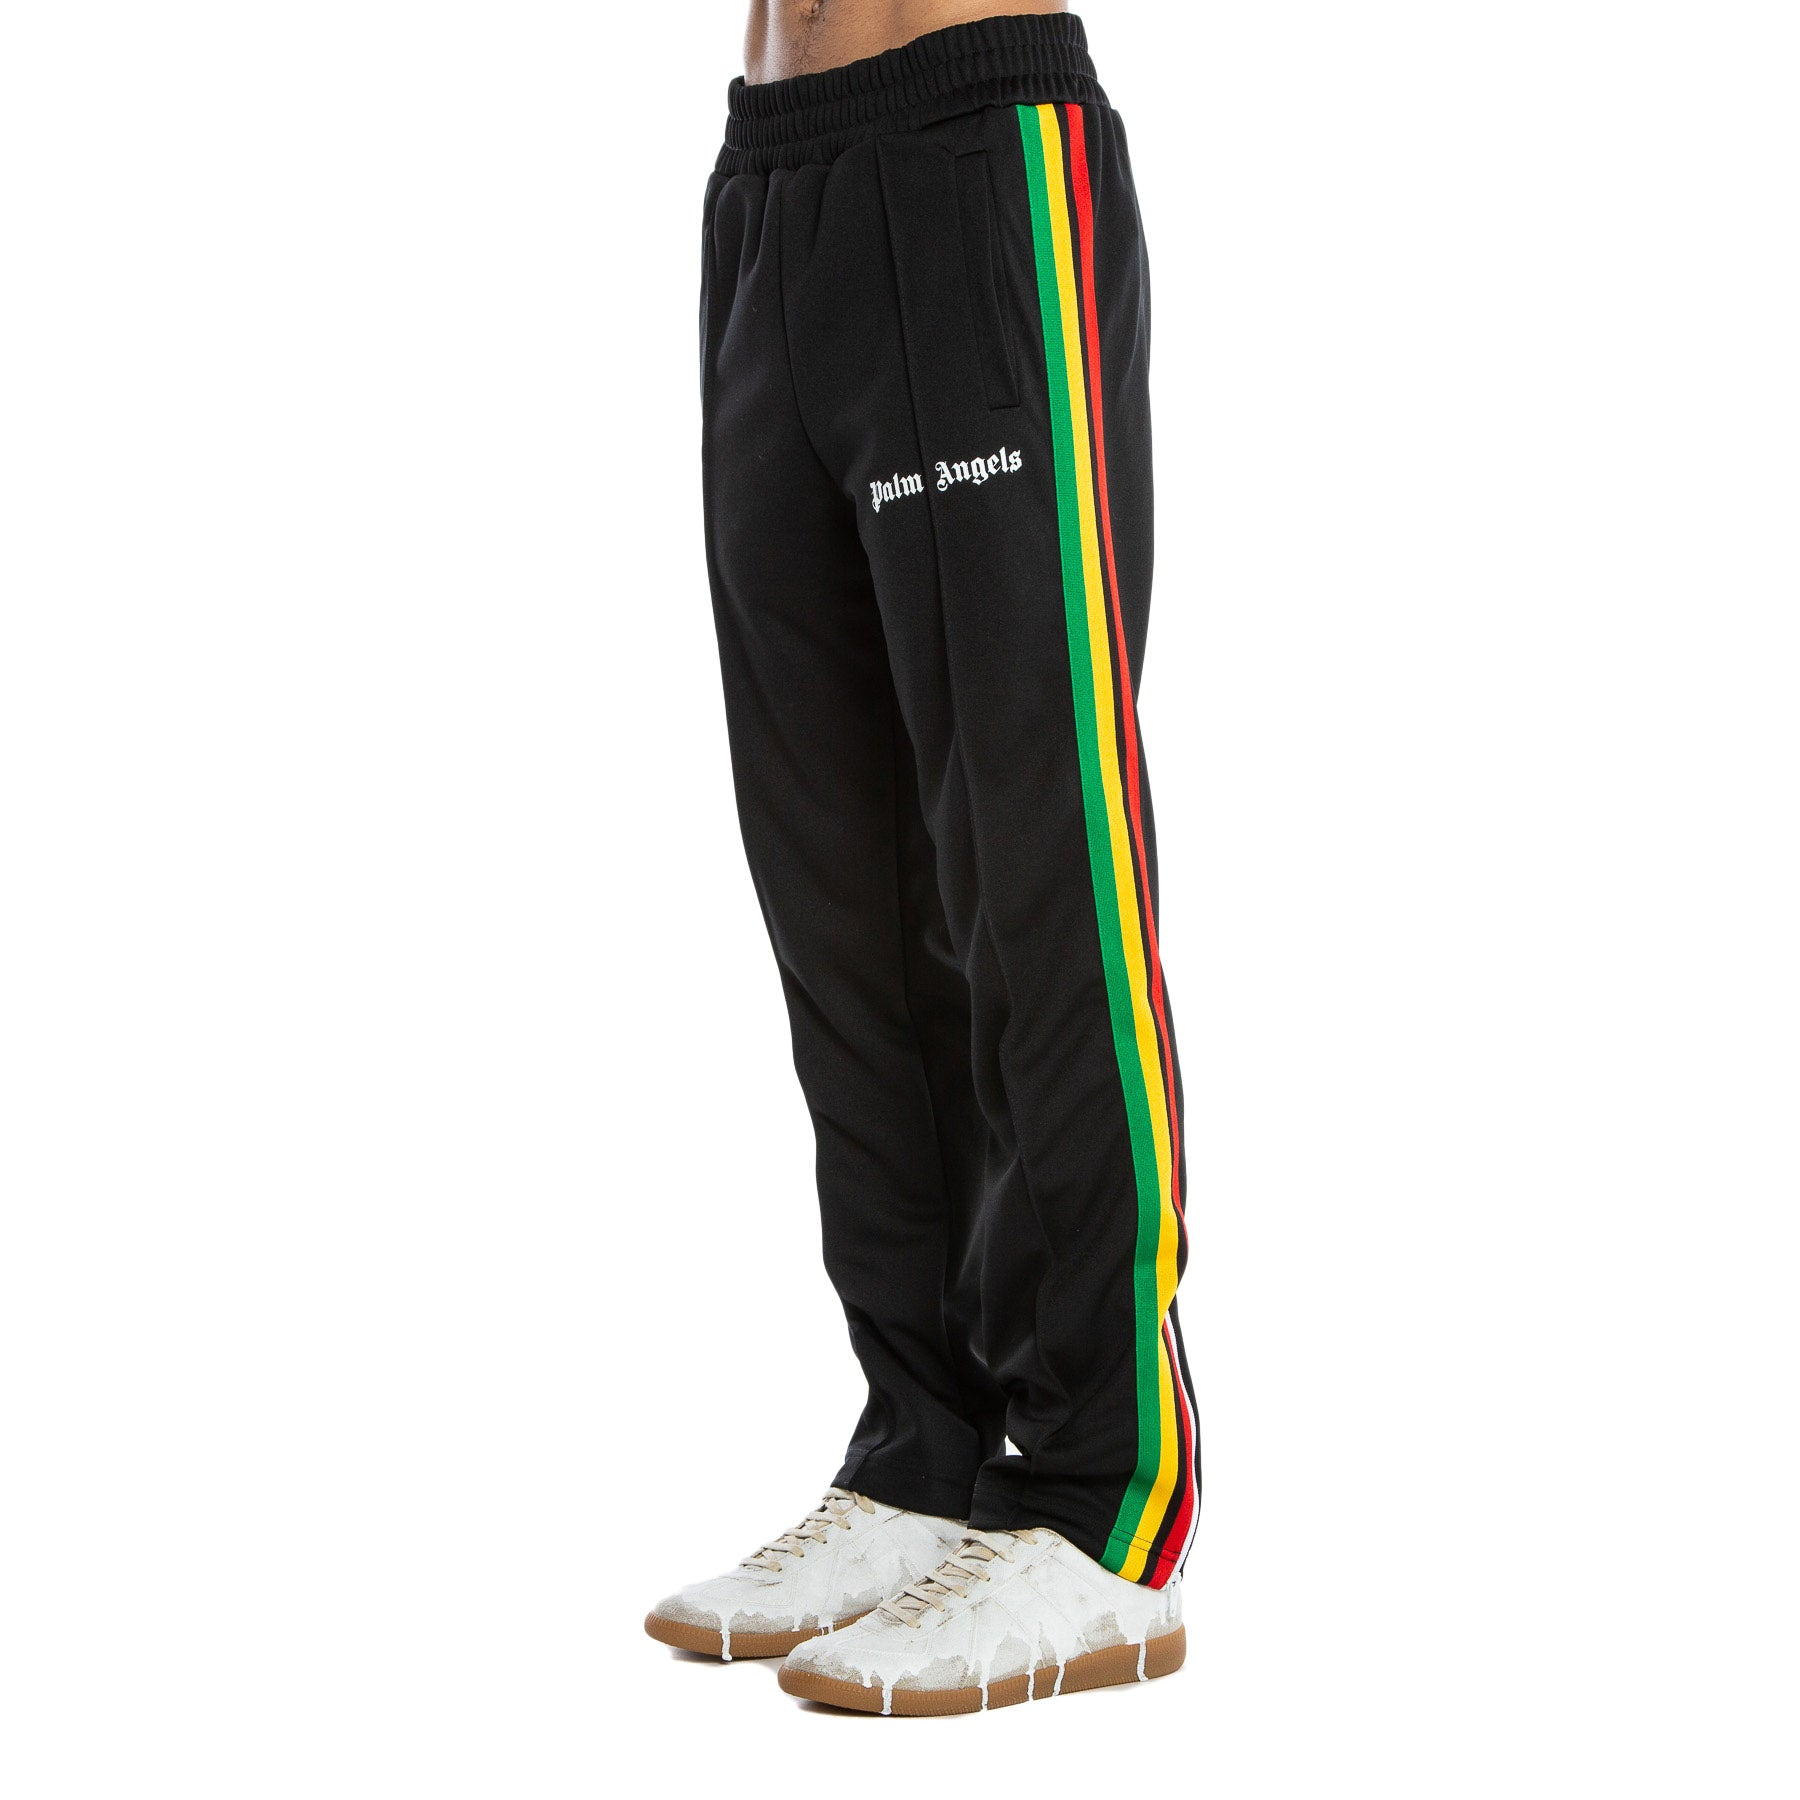 PALM ANGELS | EXODUS TRACK PANTS